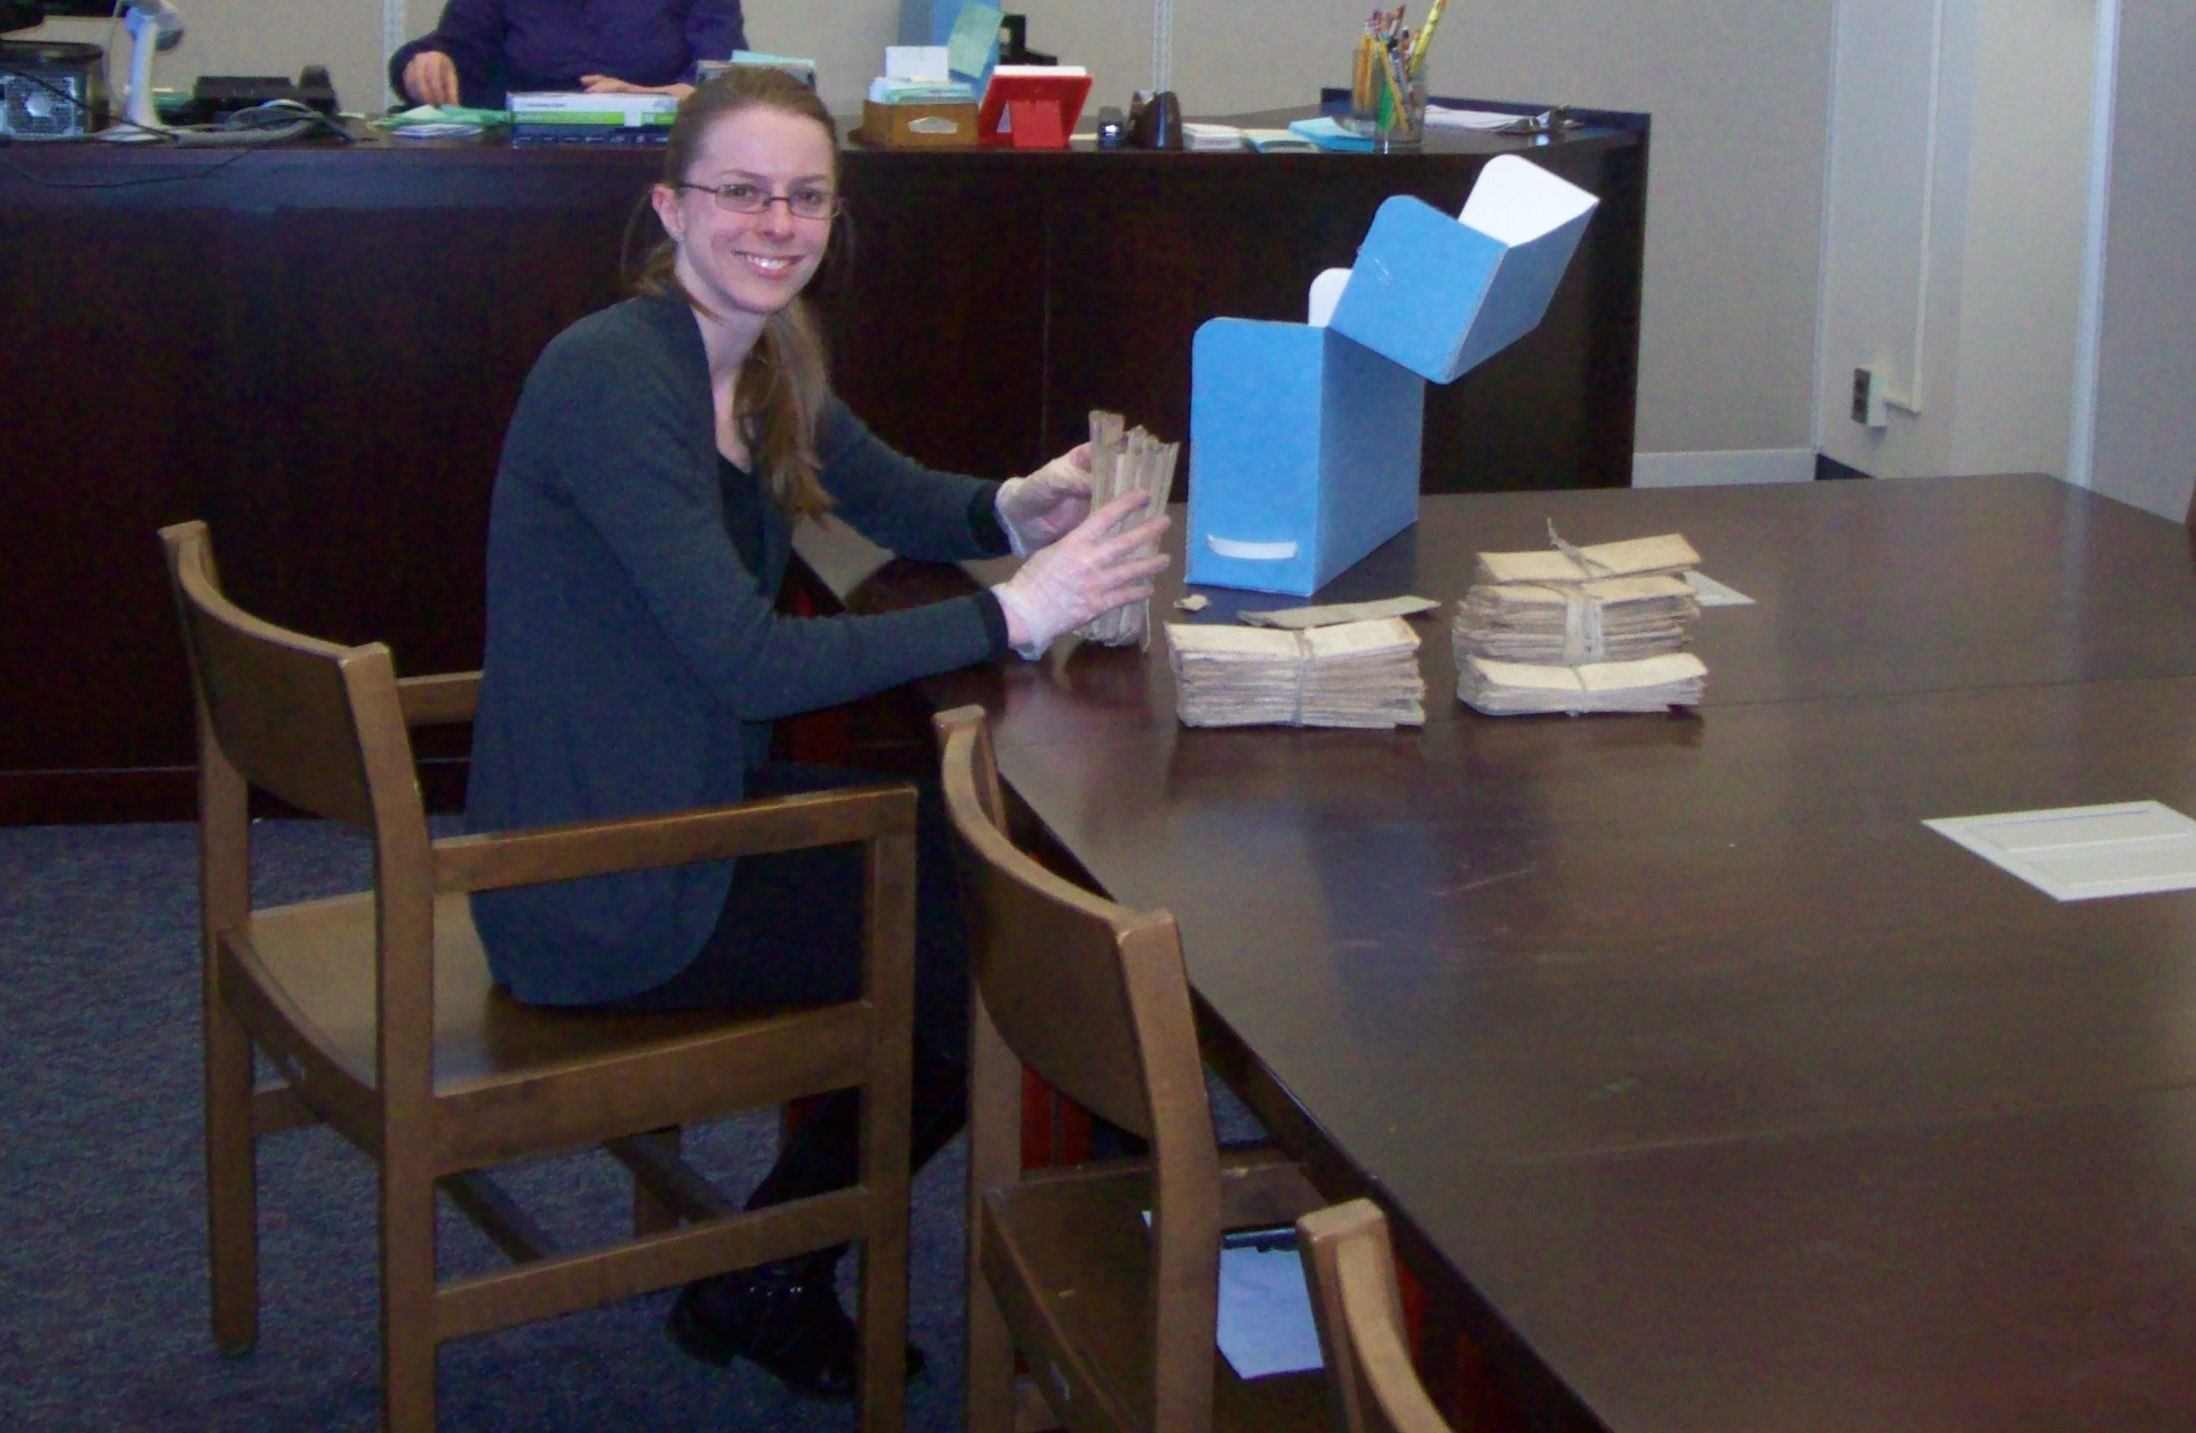 A researcher using archival records